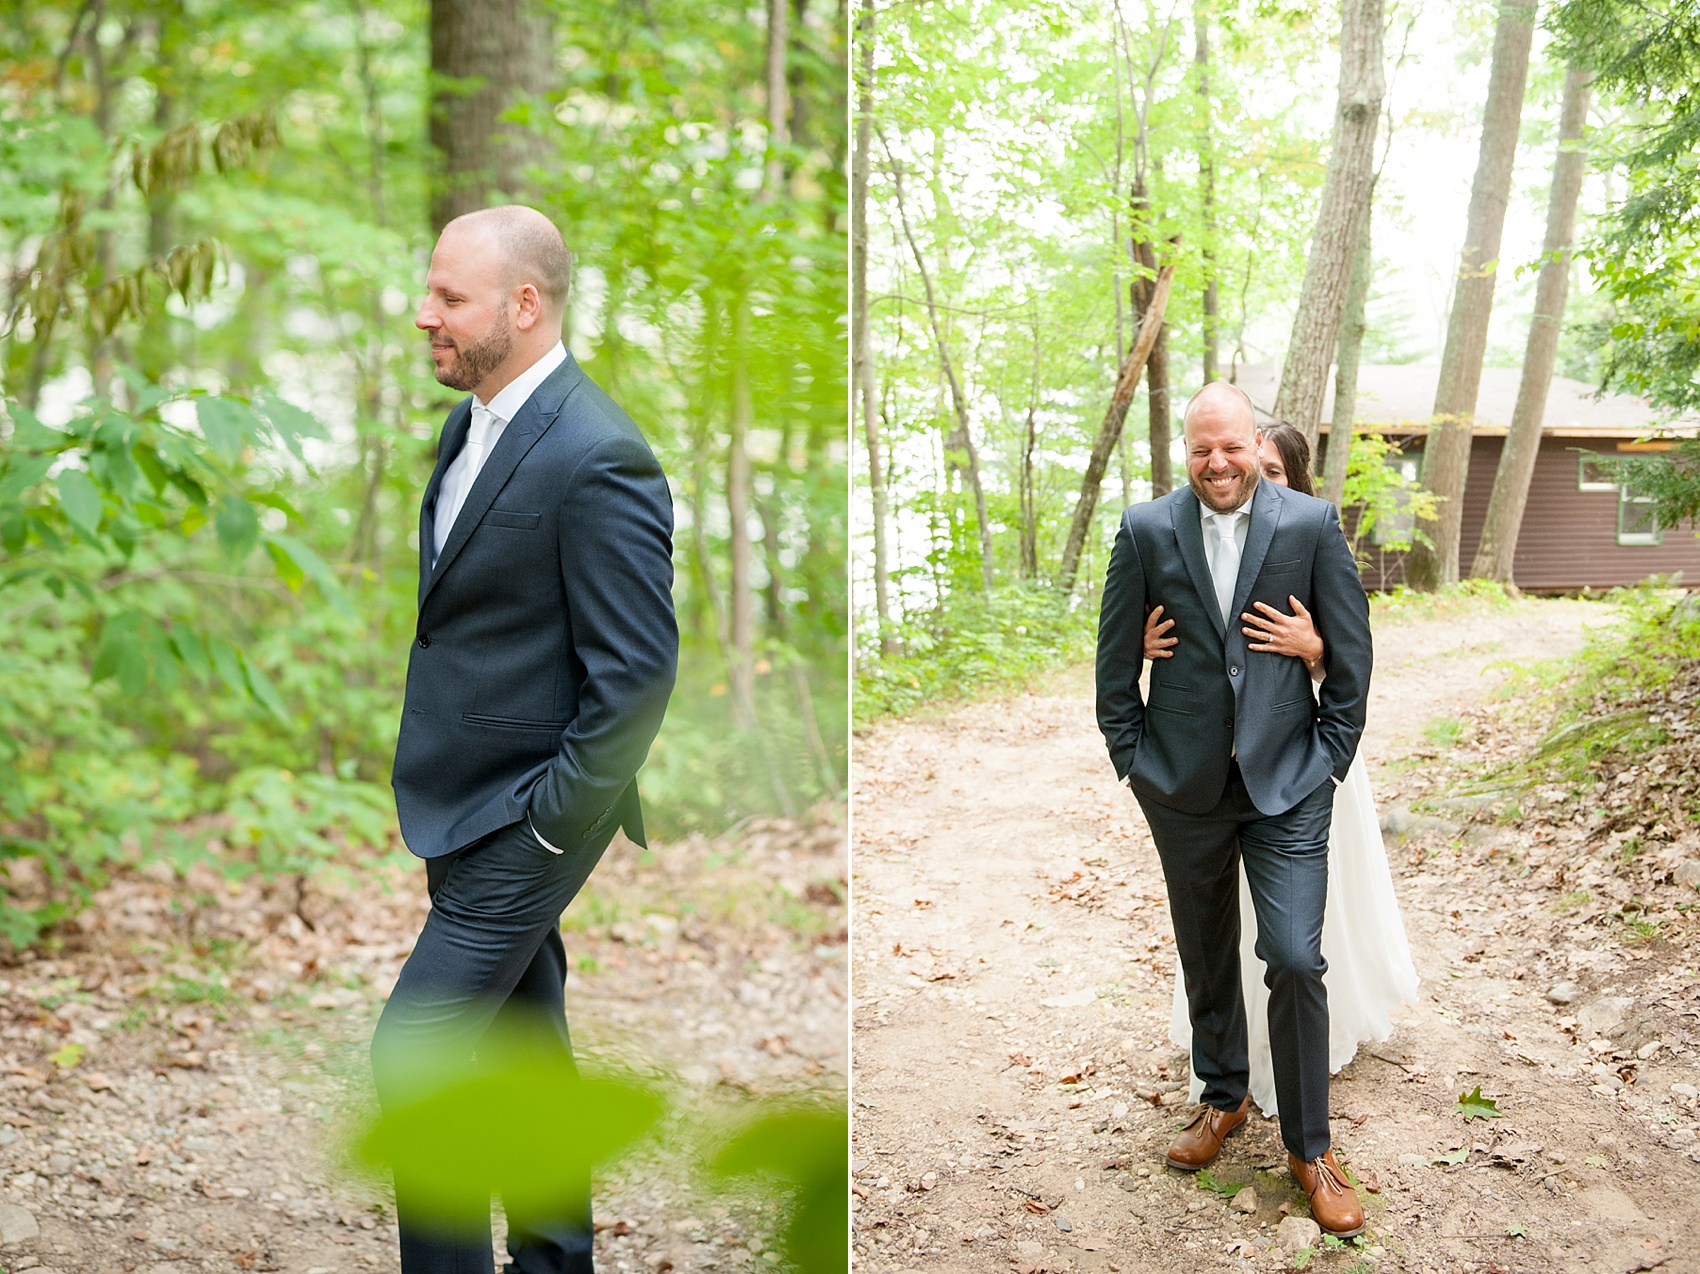 Rustic Massachusetts Berkshires wedding at Camp Wa Wa Segowea. Photos by Mikkel Paige Photography, destination wedding photographer.